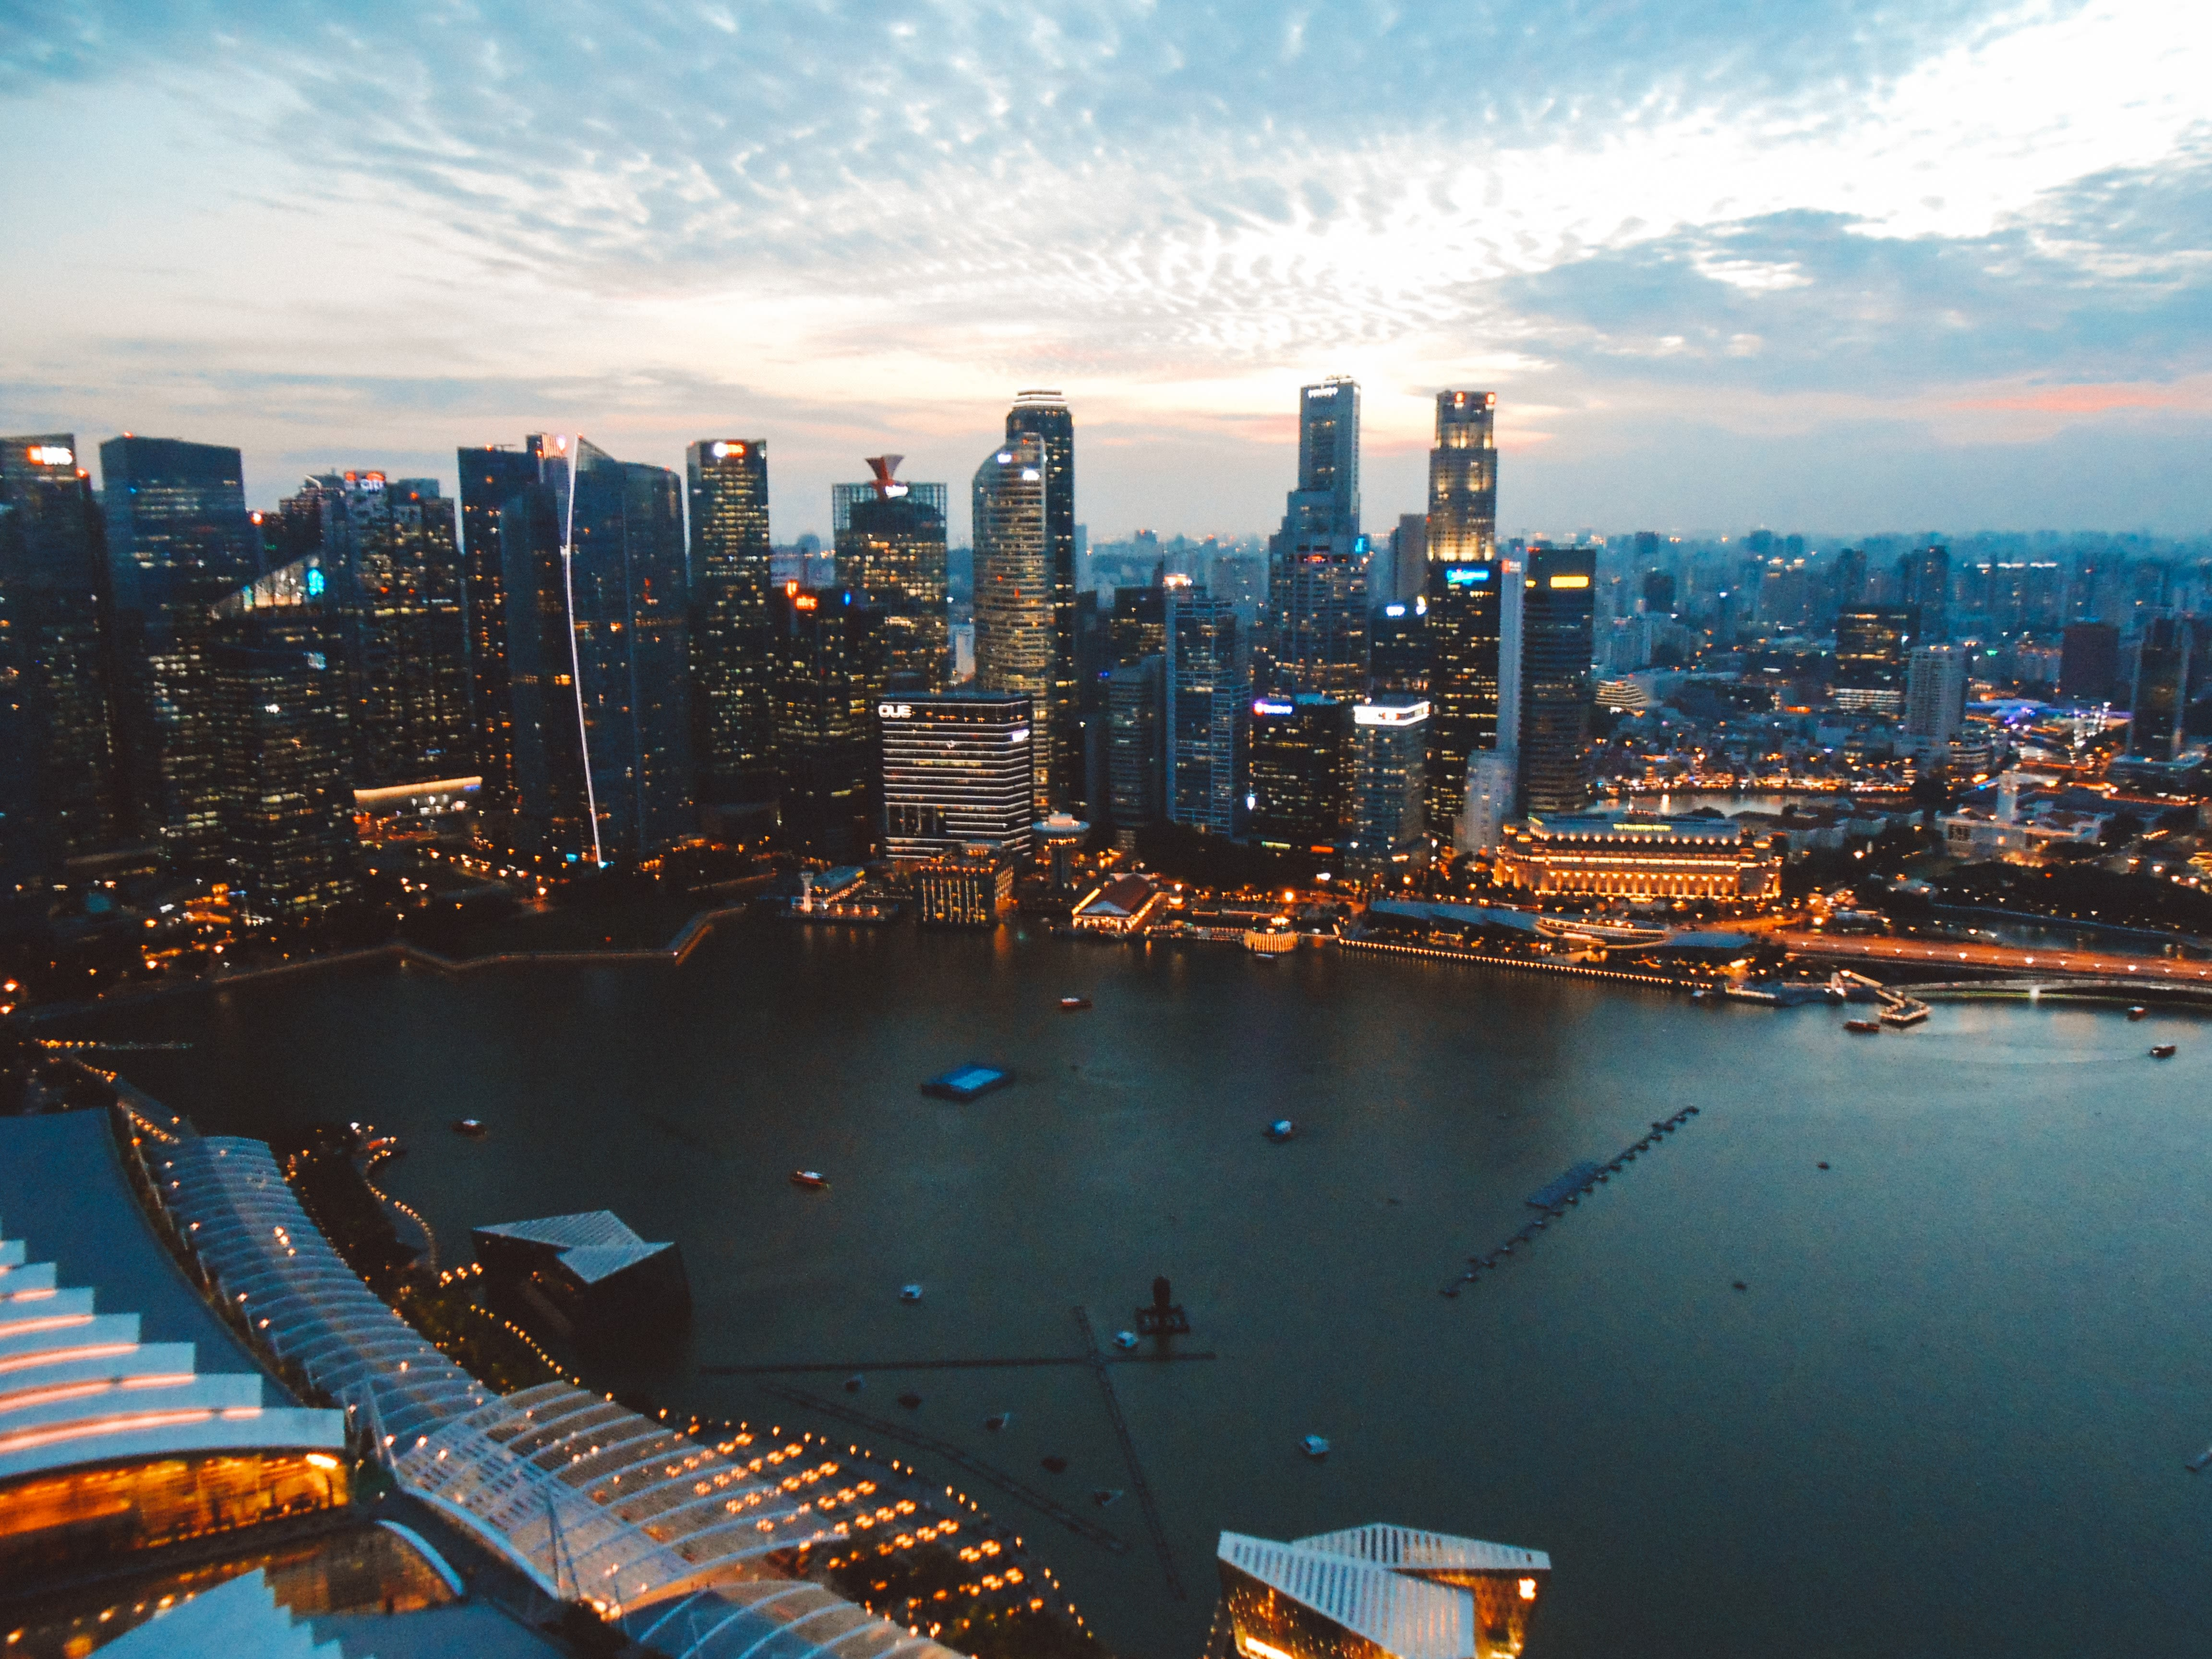 Top 5 Must-Visit Cities in Asia Small Preview Image